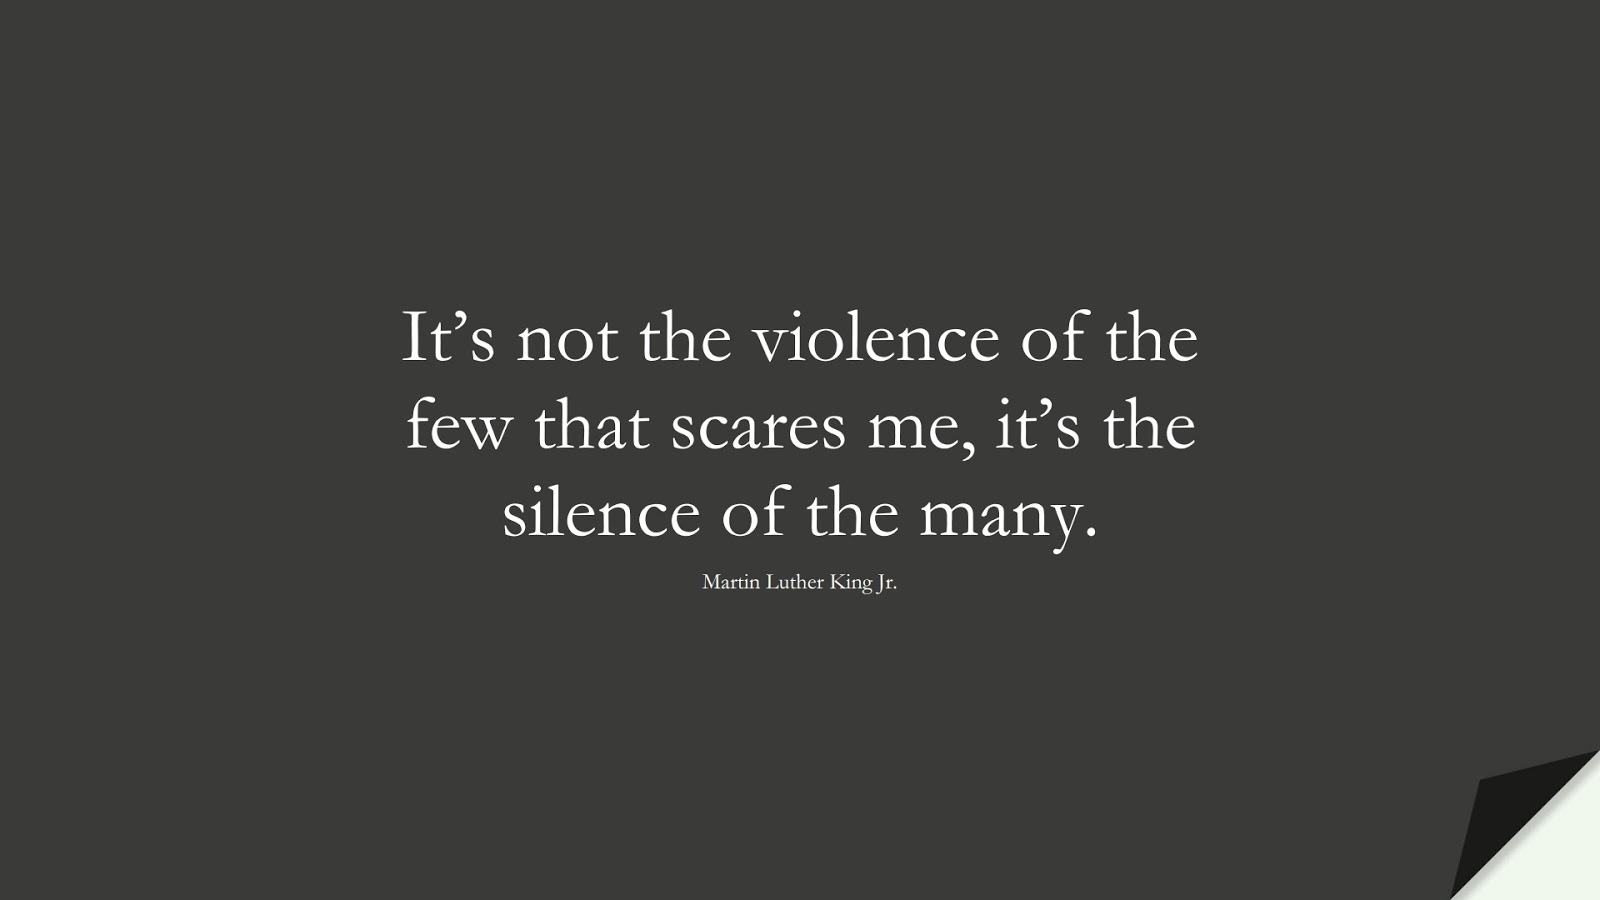 It's not the violence of the few that scares me, it's the silence of the many. (Martin Luther King Jr.);  #MartinLutherKingJrQuotes